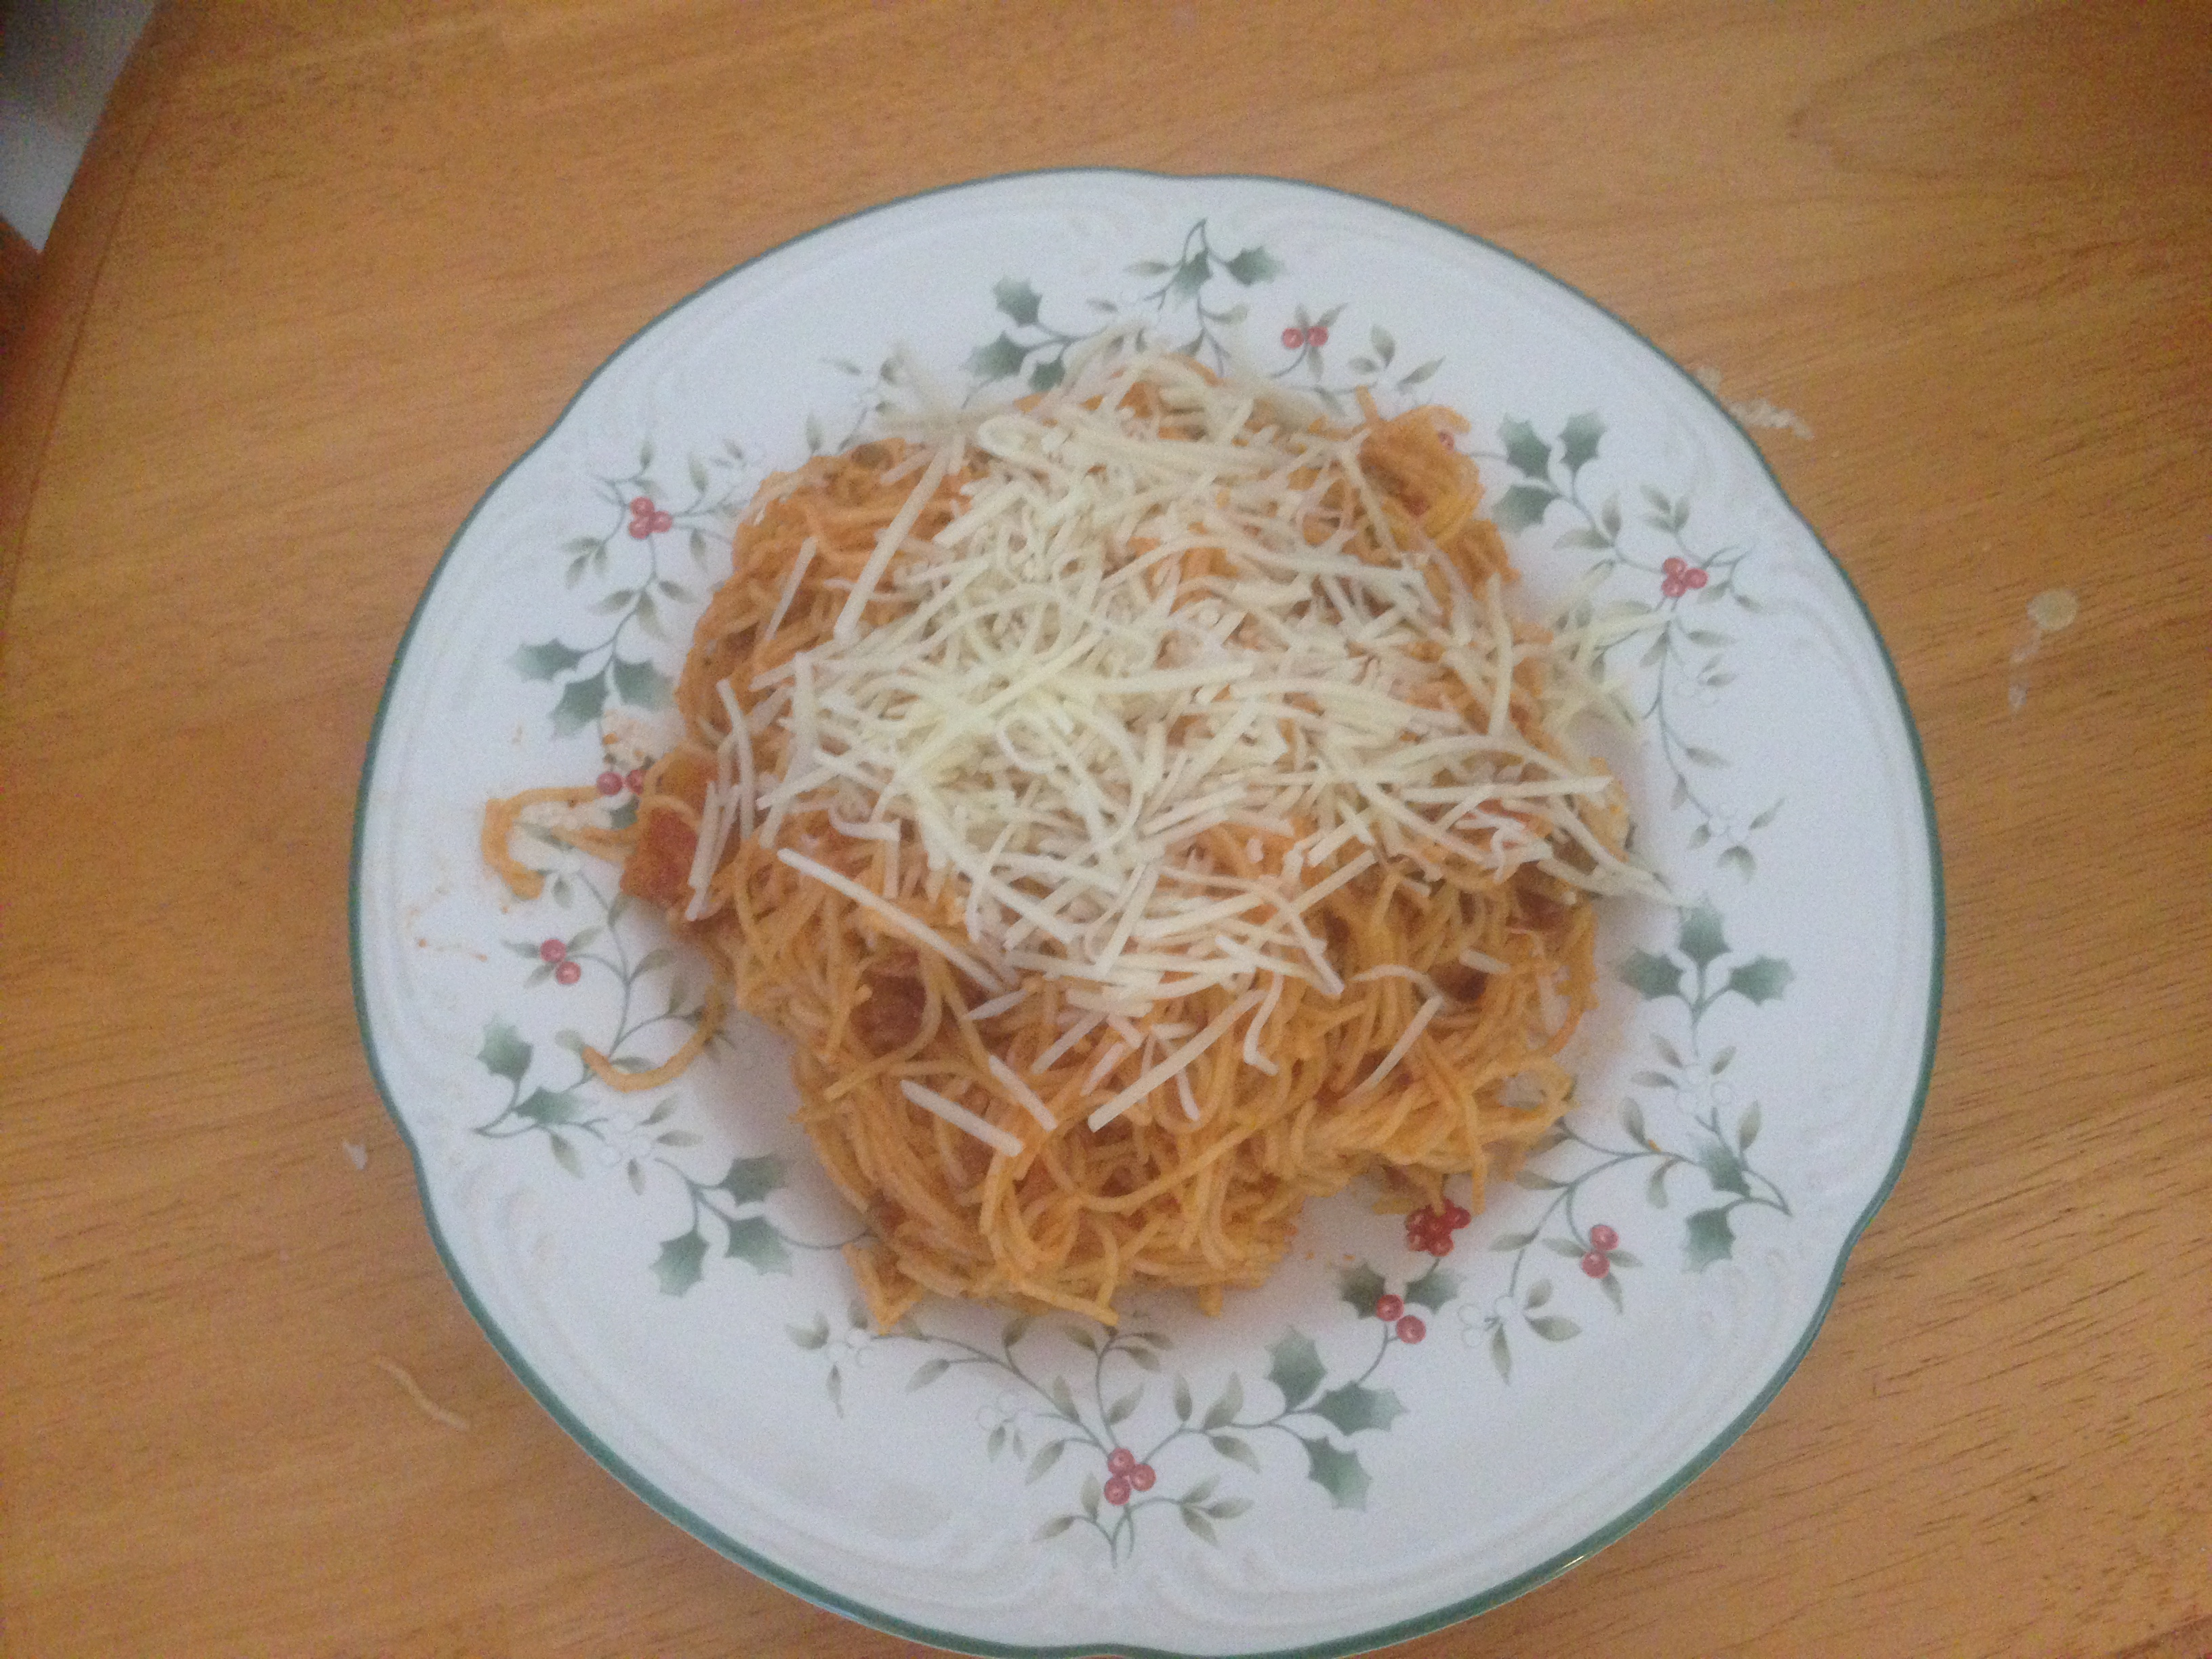 Mariu's Spaghetti with Meat Sauce Chi S. Sarmeol